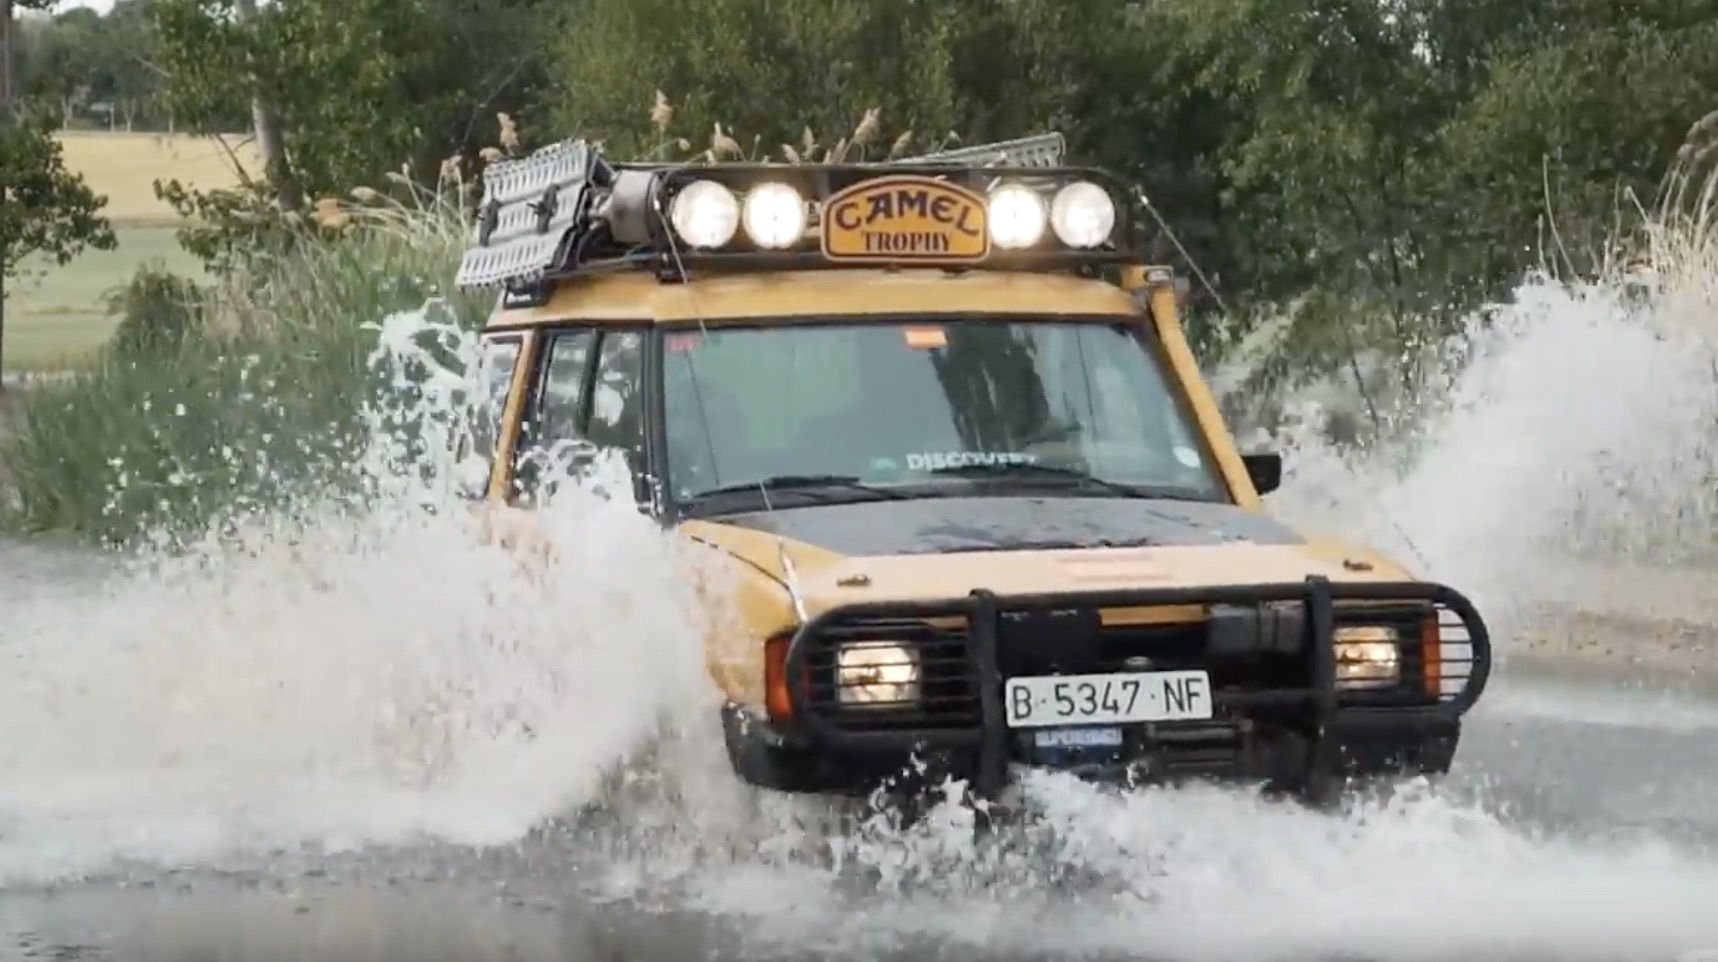 The Beauty In Brutality: The Story Of A Surviving Land Rover Discovery That Ran Camel Trophy